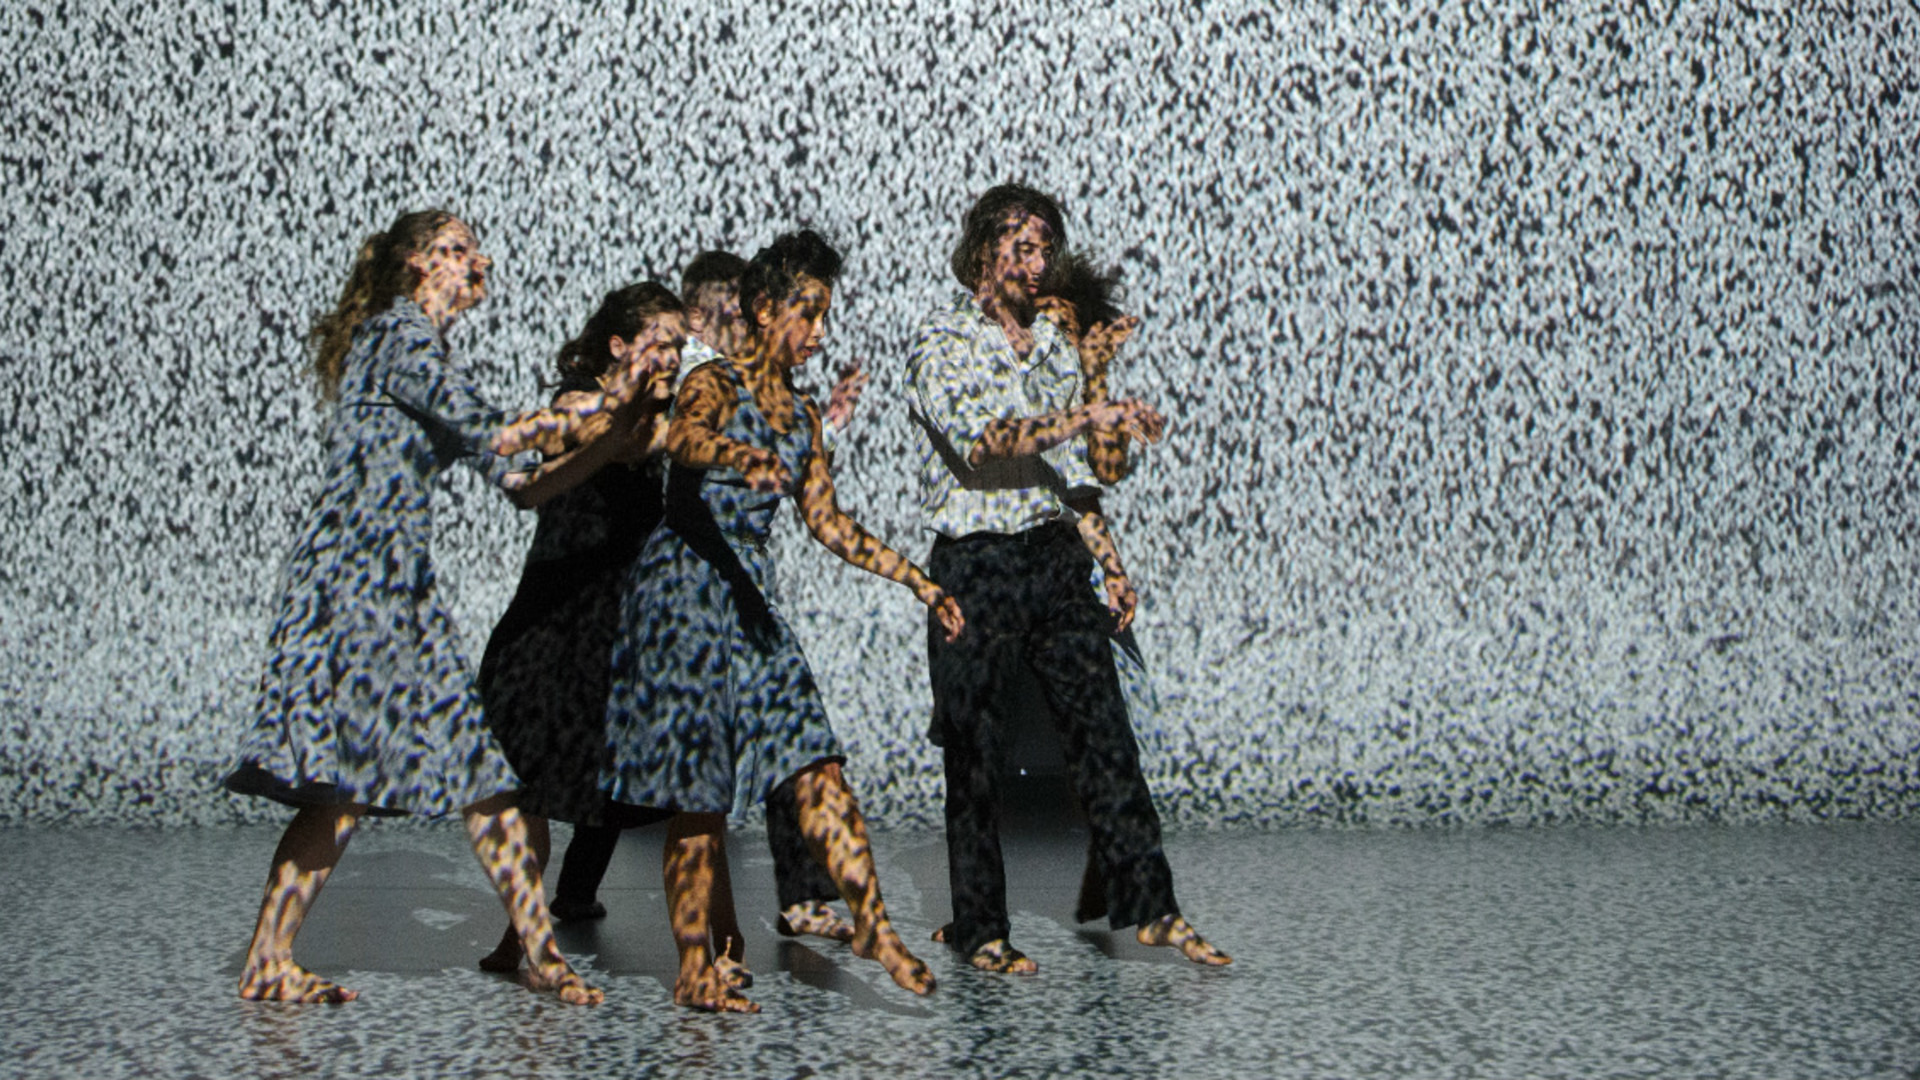 A group of dancers move in a tight group in front of a projection of static.